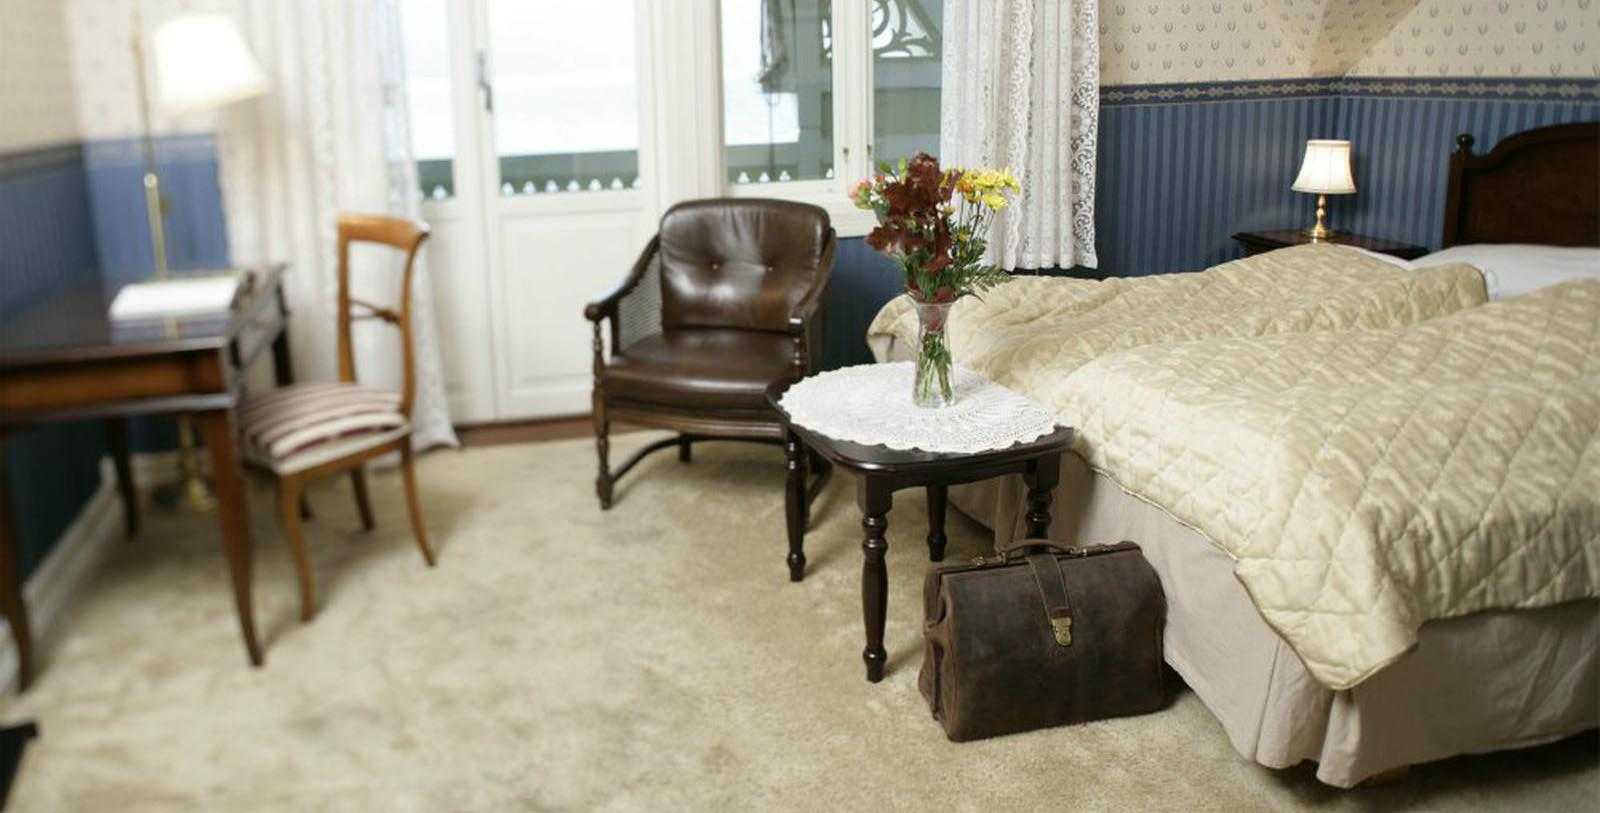 Image of Guestroom Interior Kviknes Hotel, 1752, Member of Historic Hotels Worldwide, in Balestrand, Norway, Location